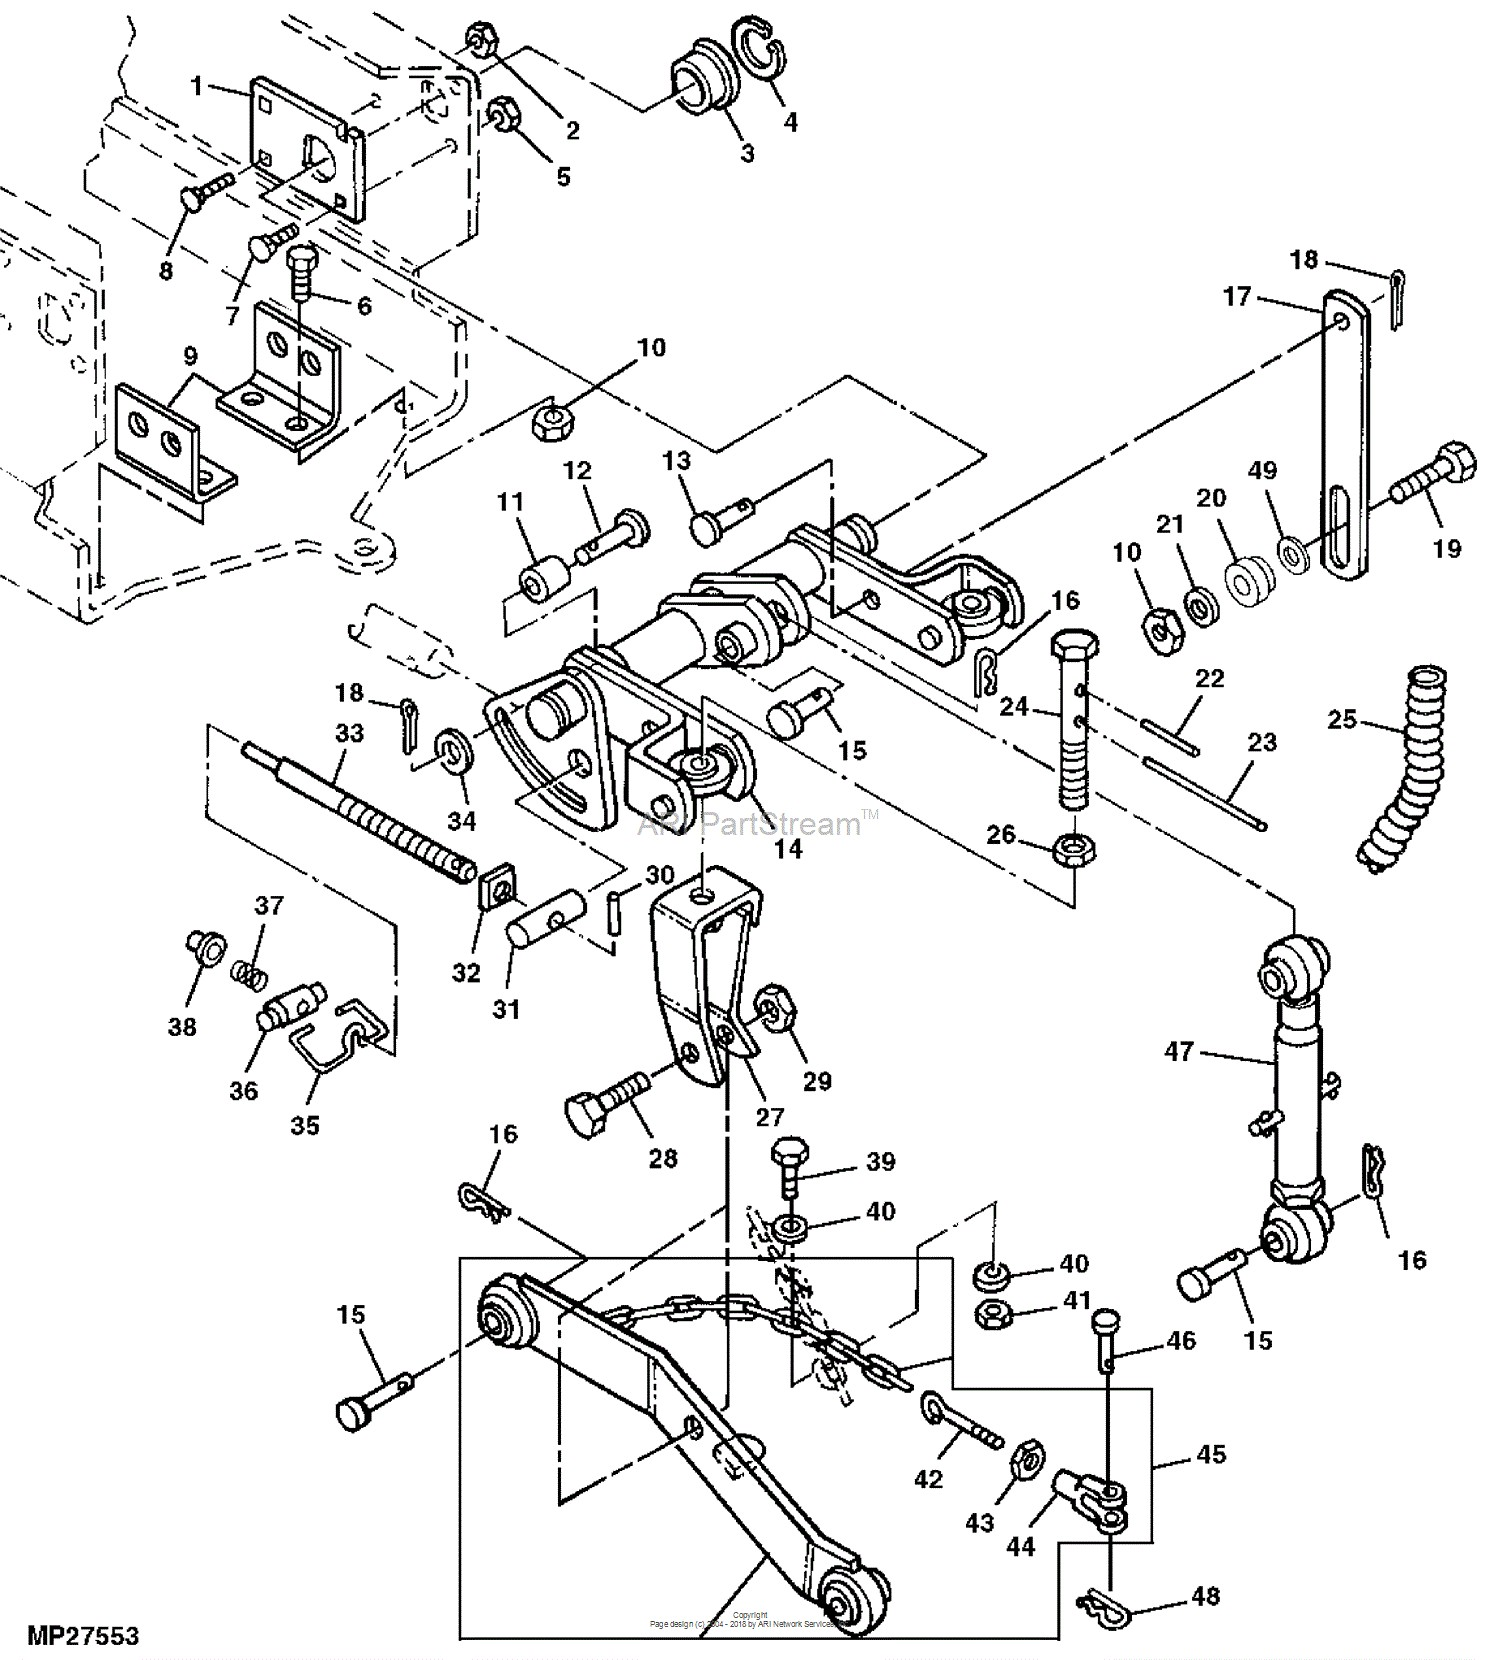 Tractor Engine Parts Diagram John Deere Parts Diagrams John Deere X465 Garden Tractor Pc9109 Of Tractor Engine Parts Diagram